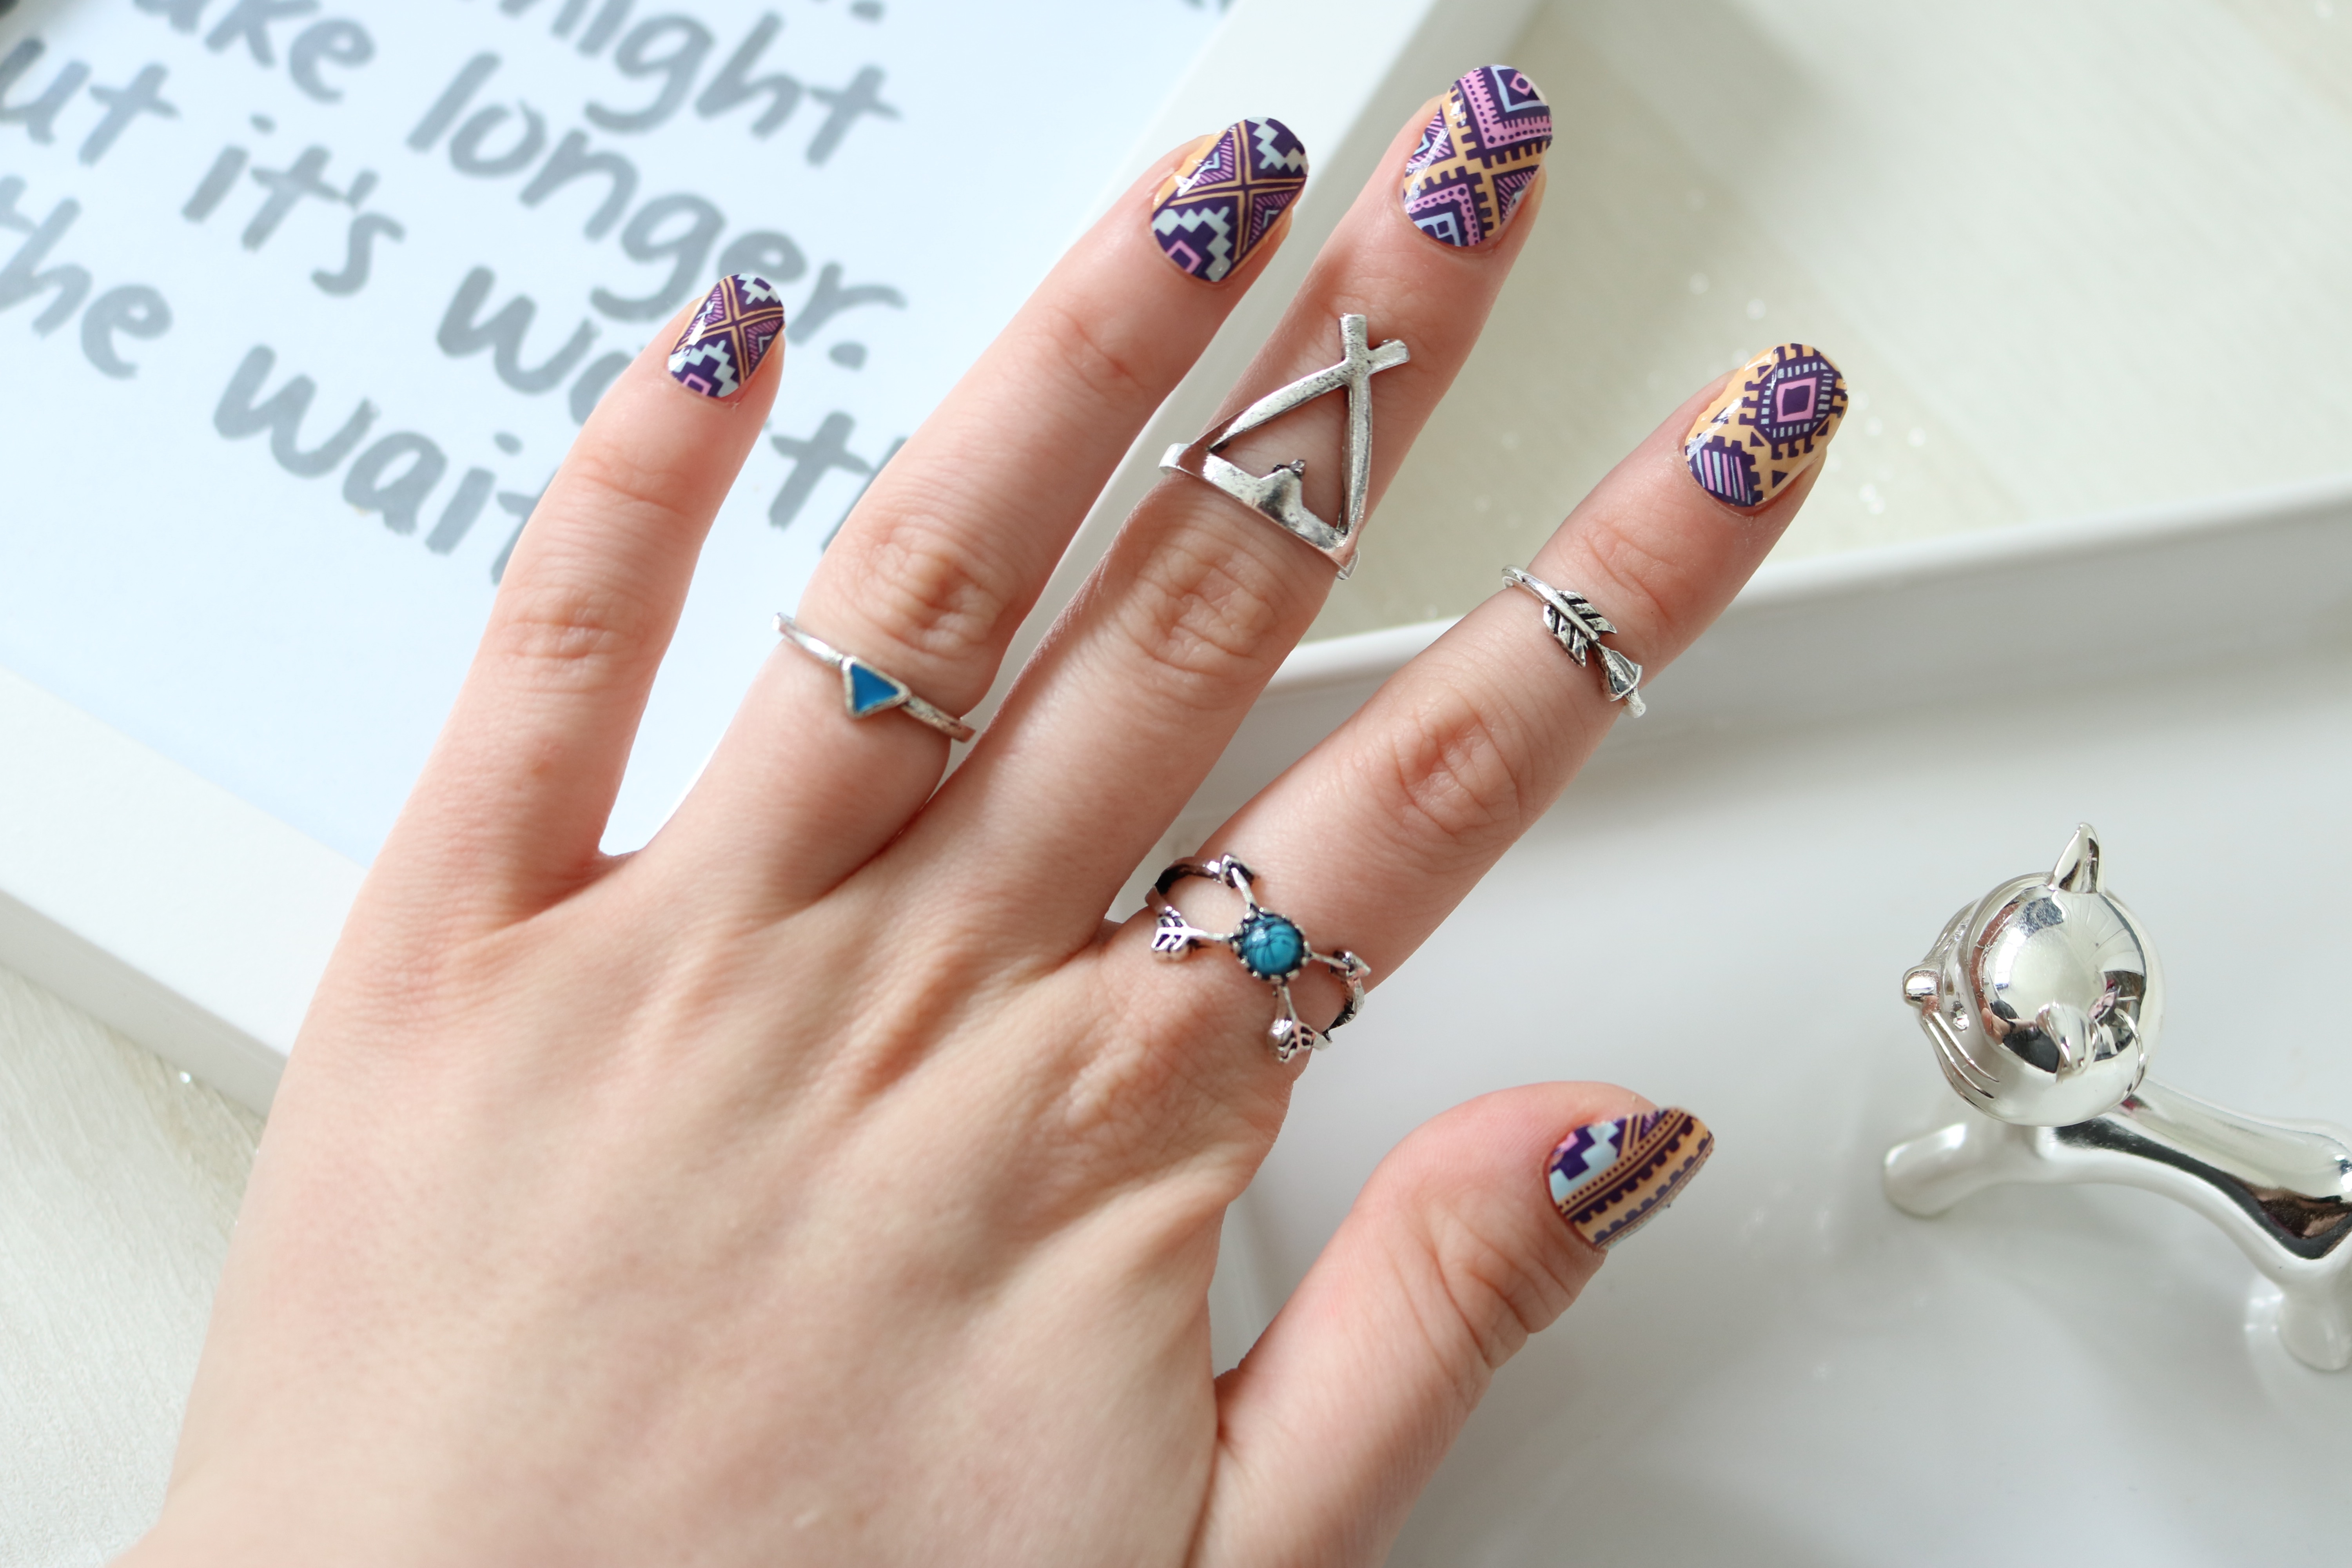 Tribe Thumbs Up Nail Wraps, Review, Corbico Jewellery